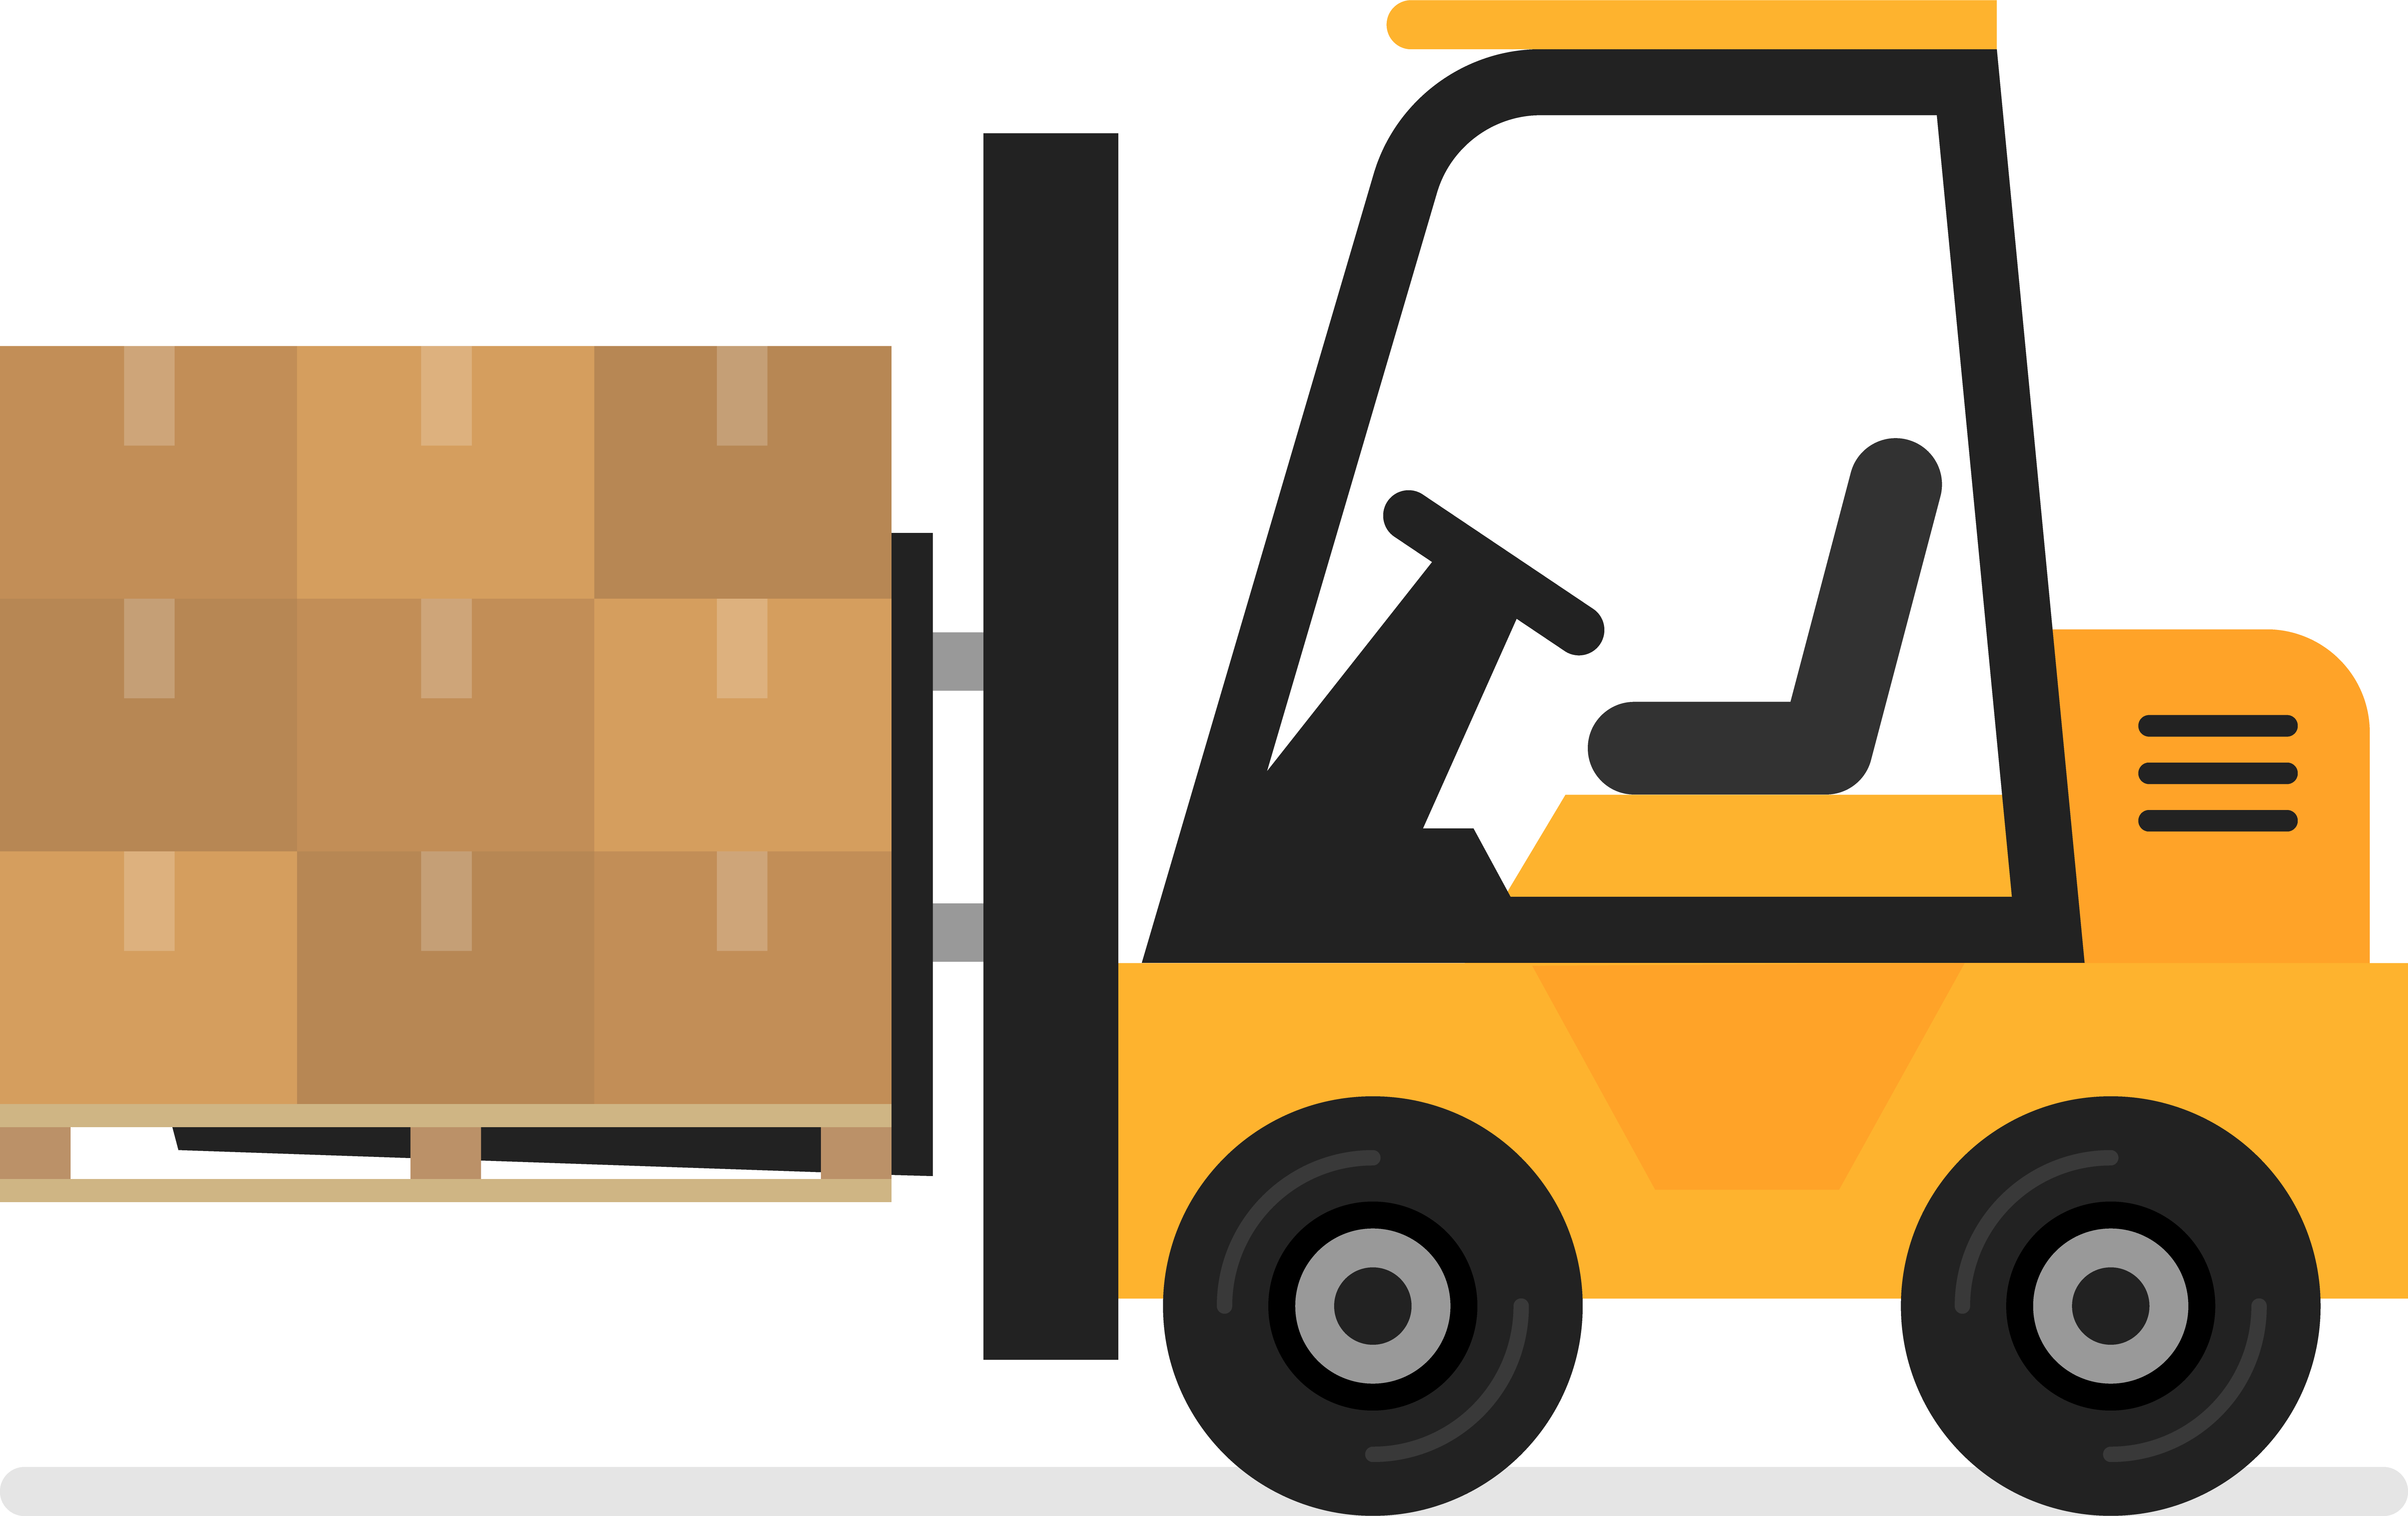 Illustration of a Lift Truck